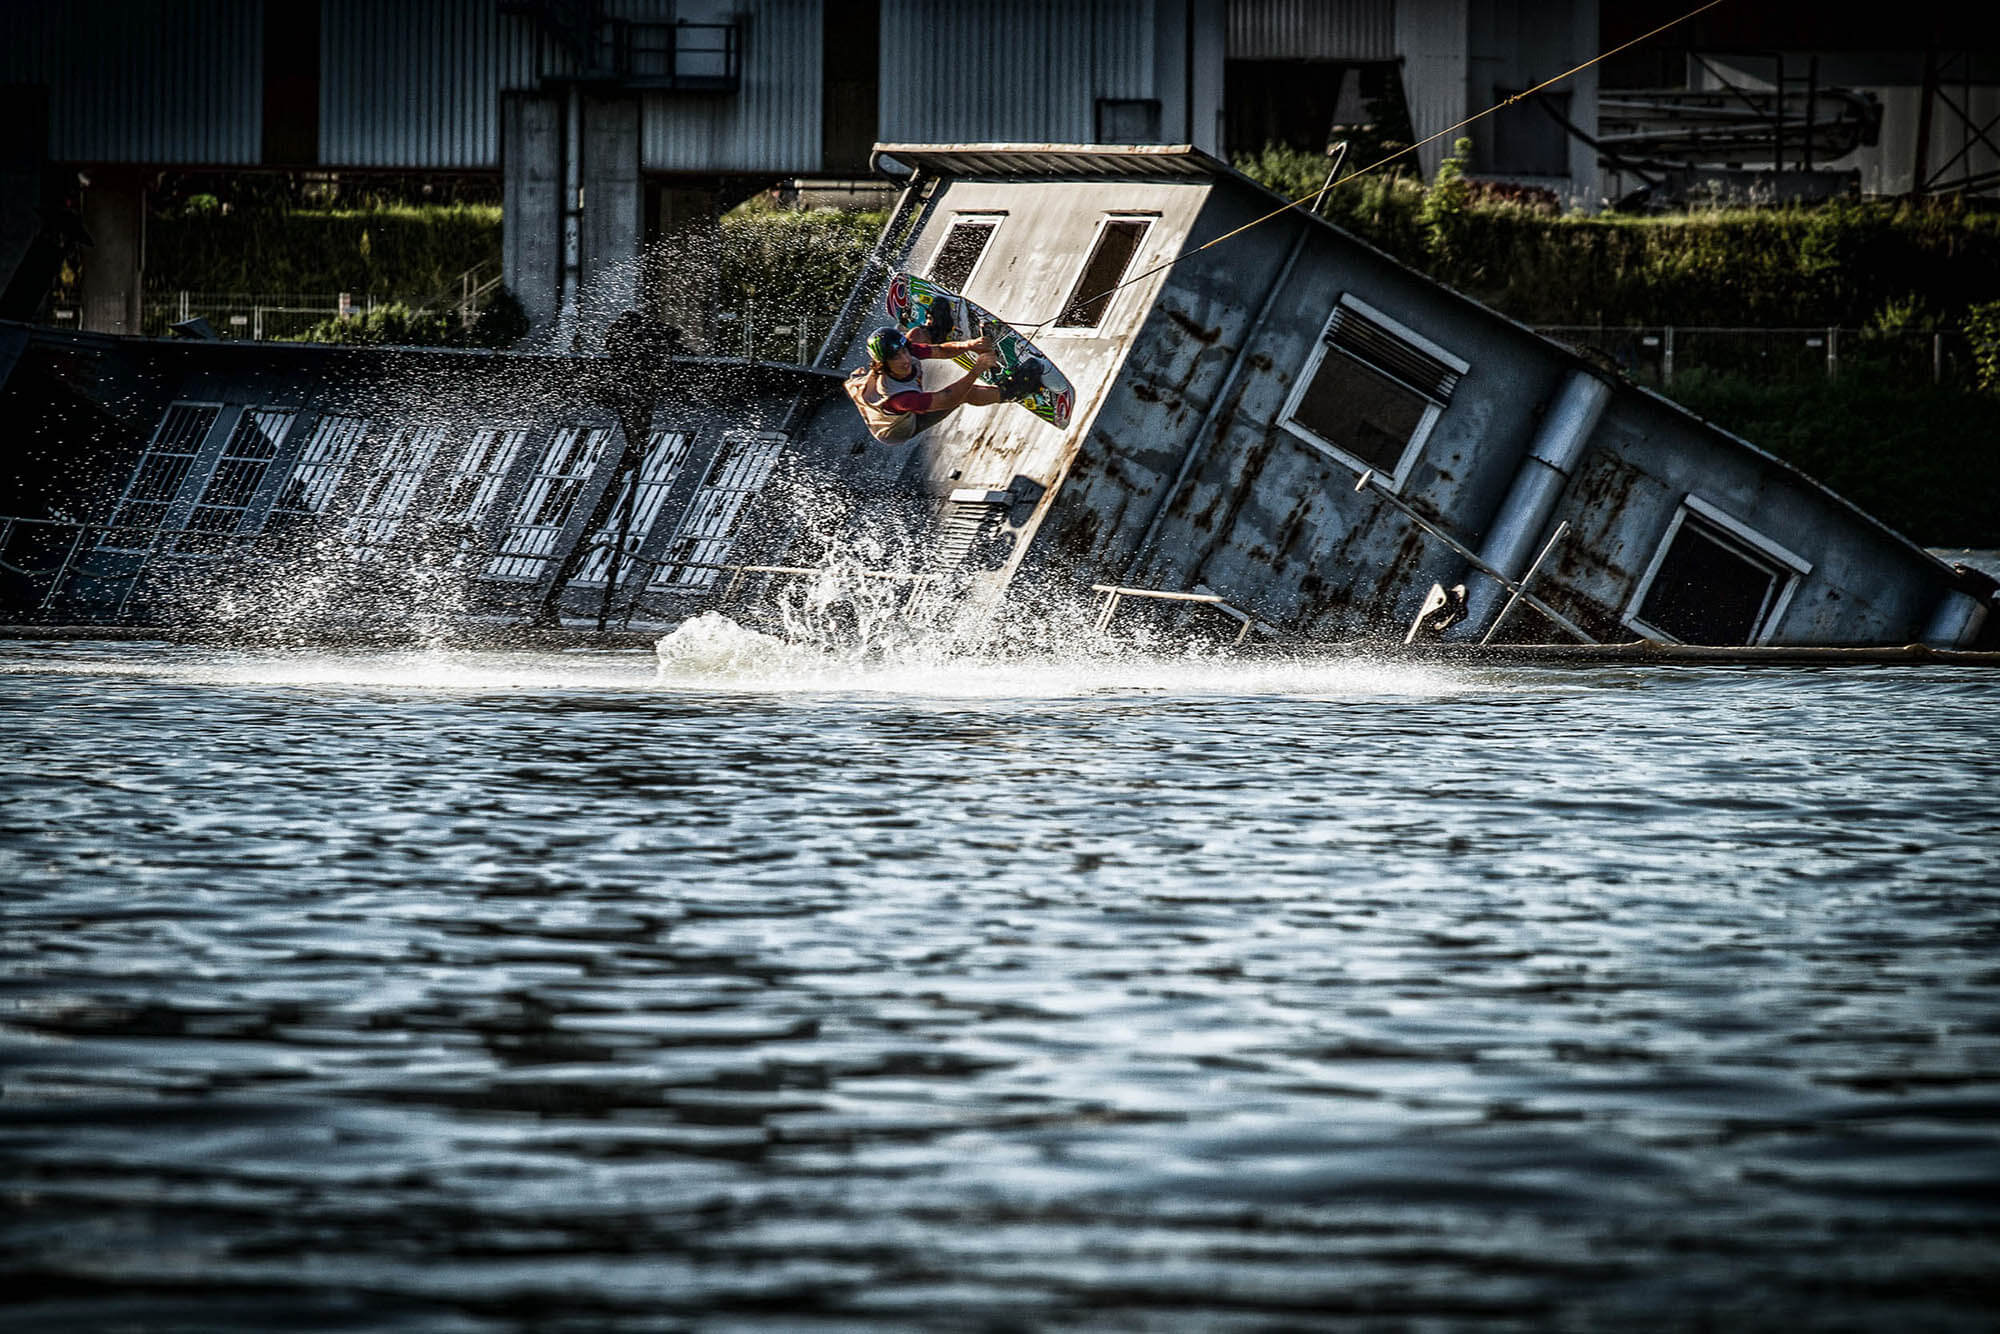 wakeboard wakeboarding redbull red bull wake of steel action sports photography sportfotografie flap photography fotograf philipp greindl photographer